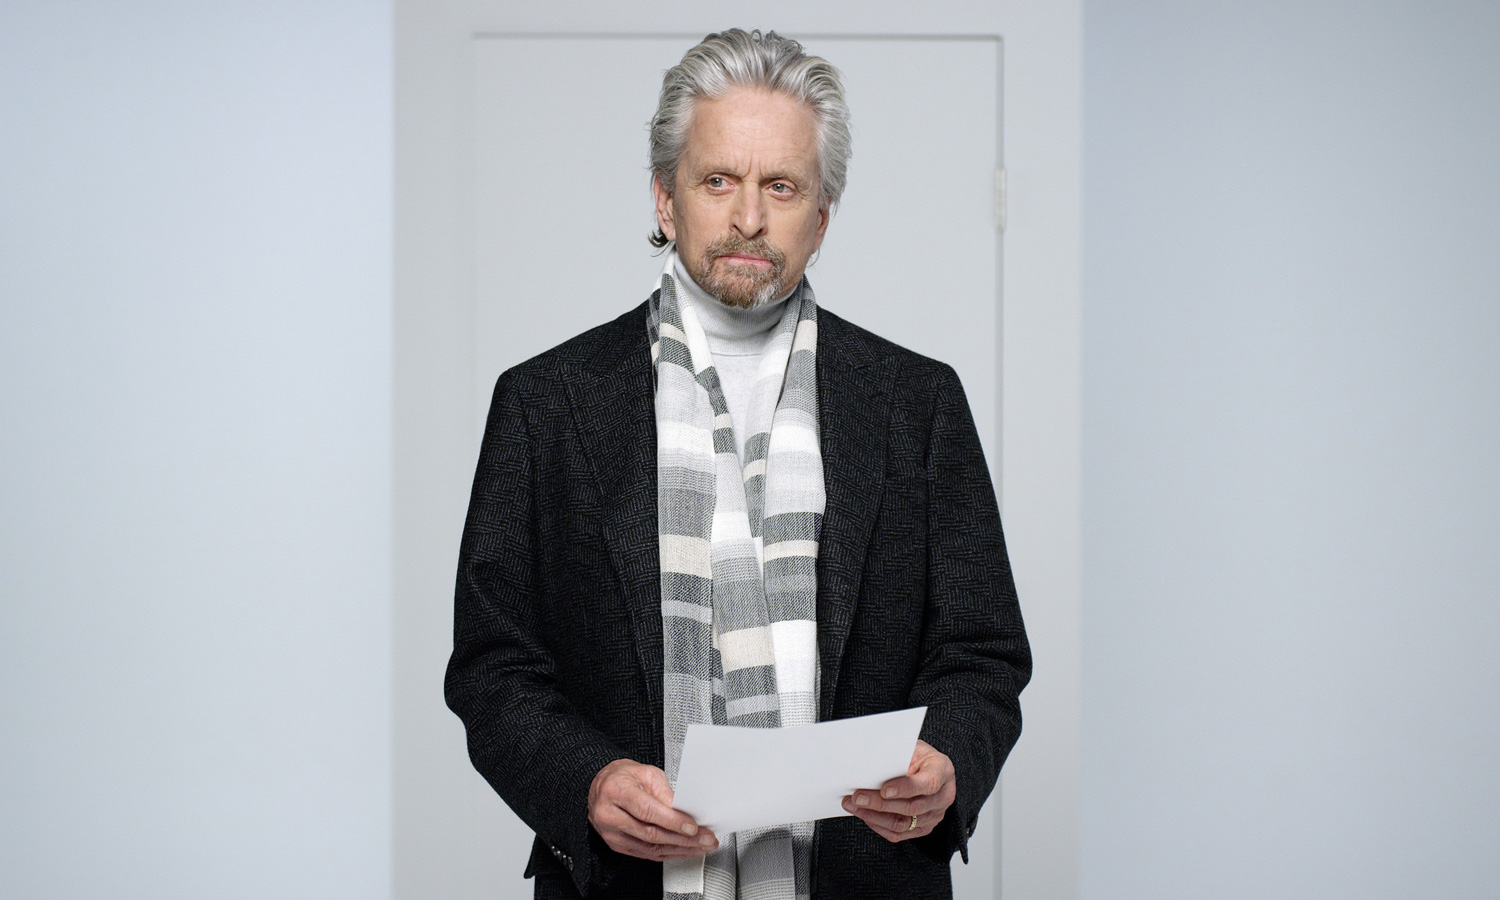 Canali-Michael-Douglas-feature-1